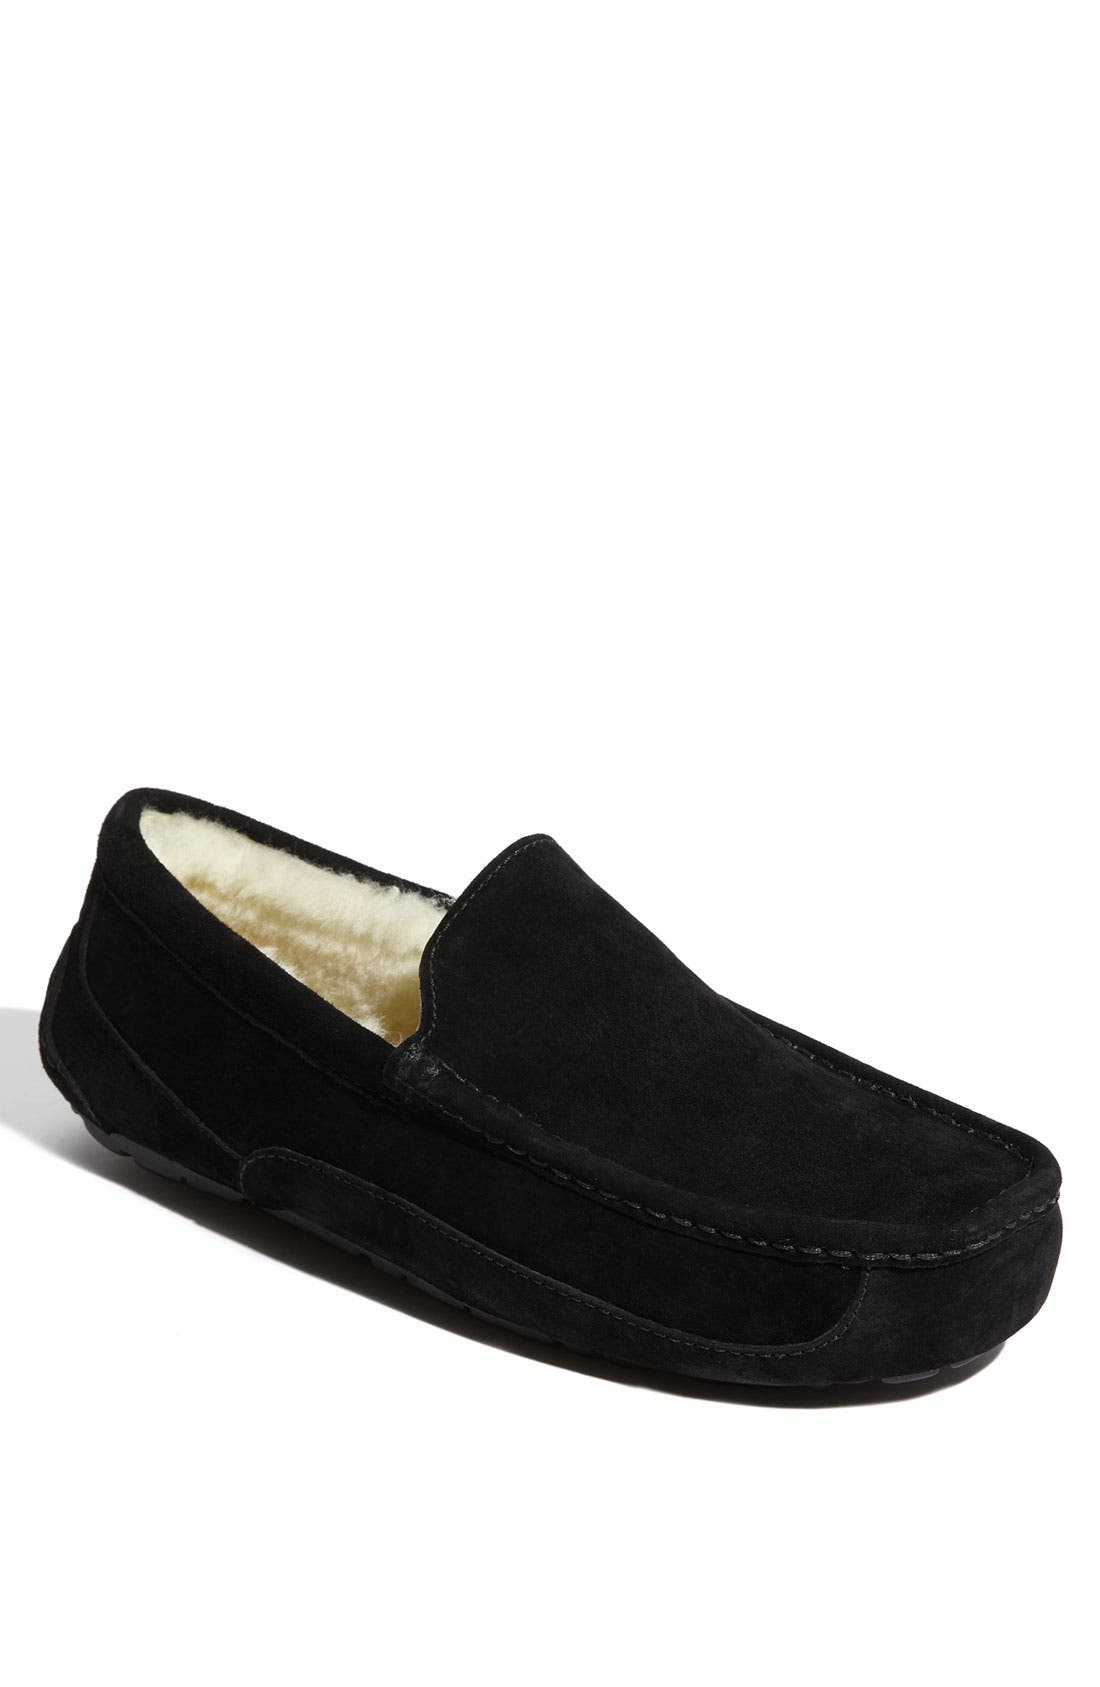 Ascot Suede Slipper,                             Main thumbnail 1, color,                             BLACK SUEDE